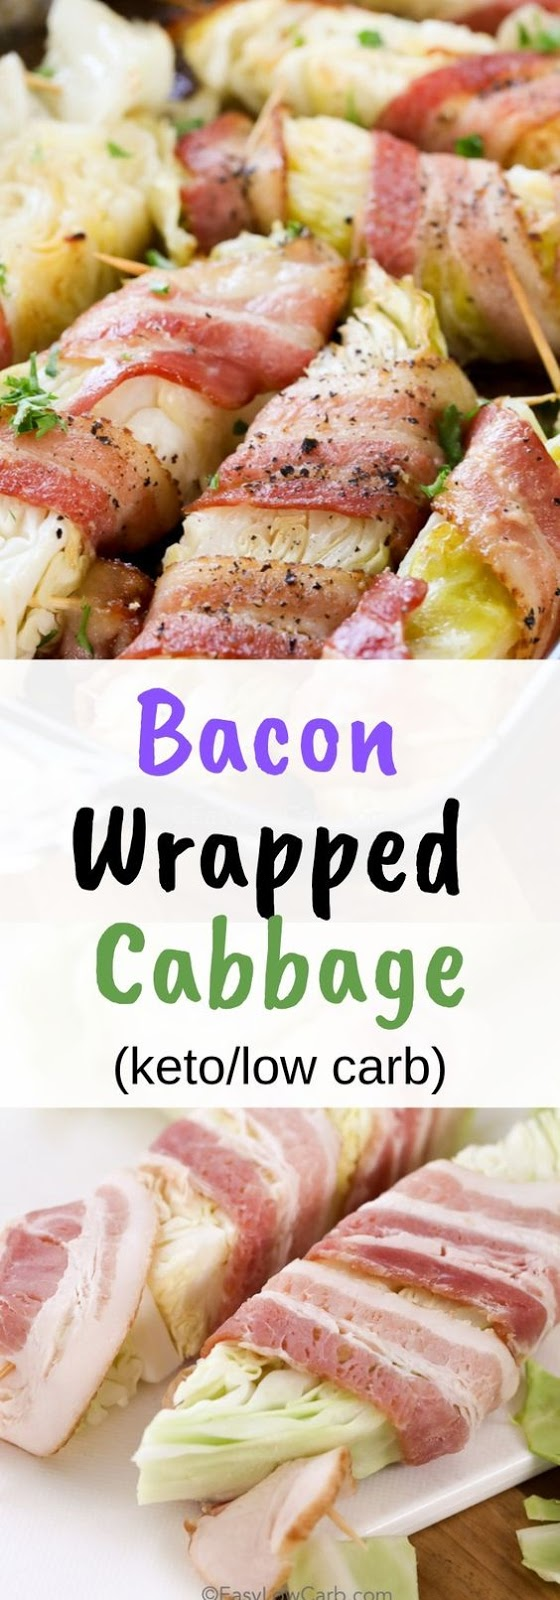 Bacon Wrapped Cabbage (keto/low carb)